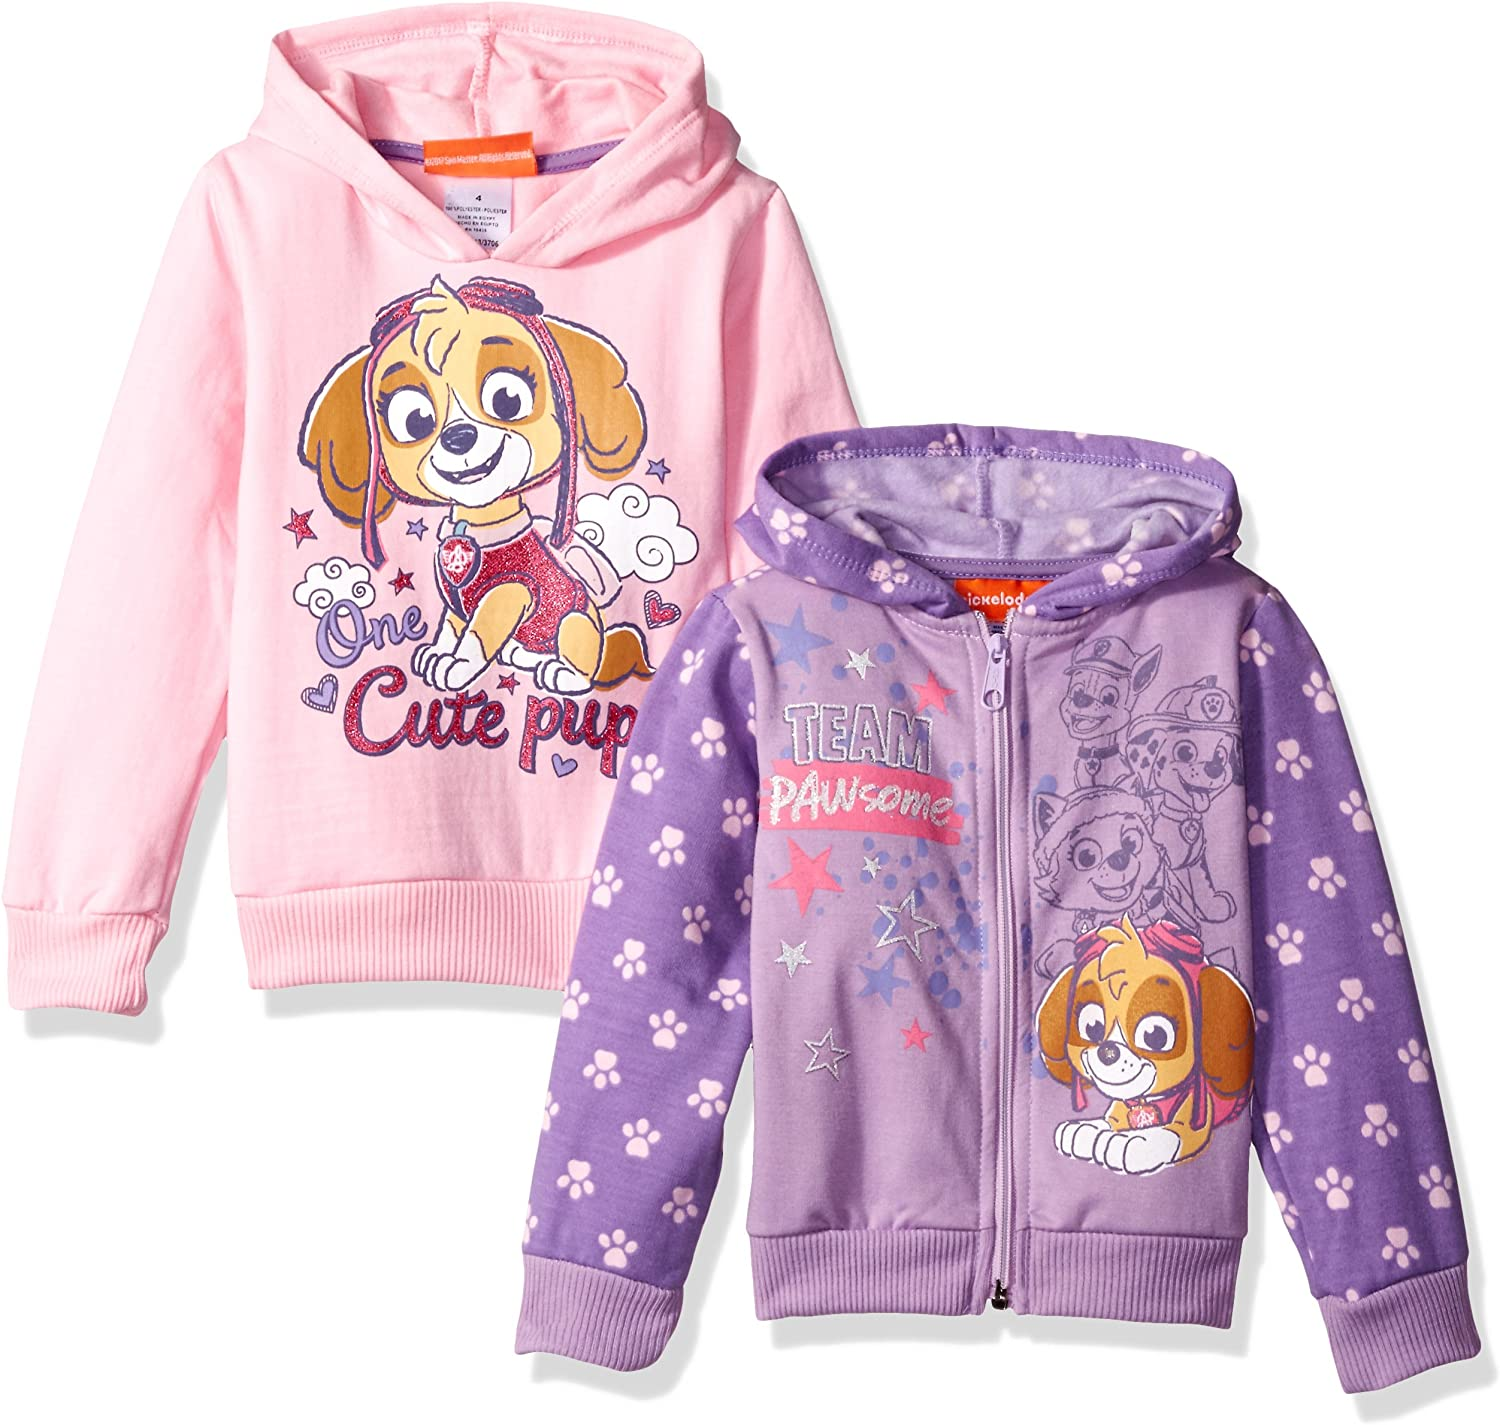 New product! New type Nickelodeon Girls' Paw Patrol New Orleans Mall 2 Pack Hoodies